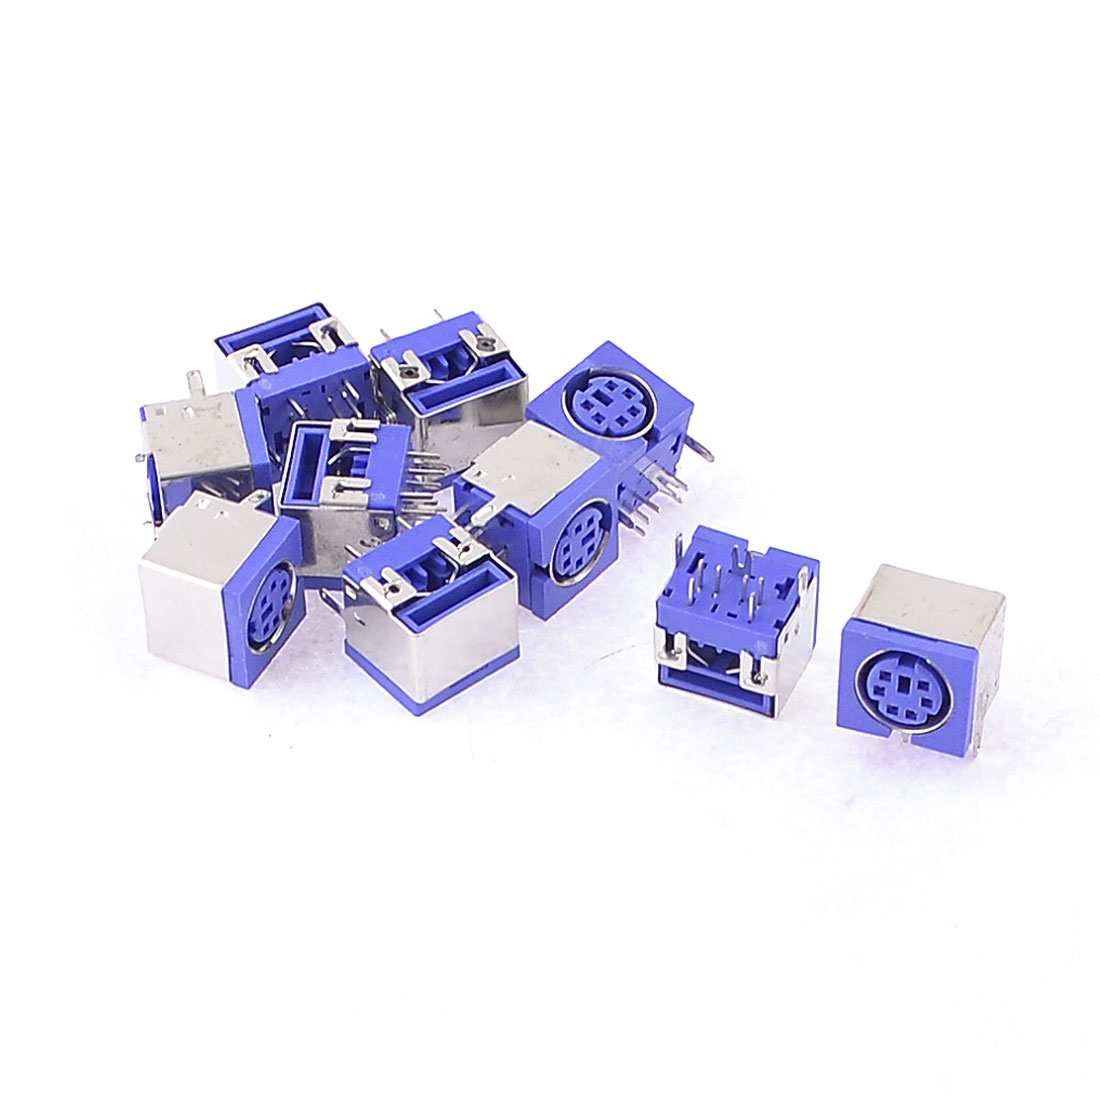 10 x Metal Cover 6P DIN PS/2 Mouse Keyboard PCB Socket Connector Indigo Blue